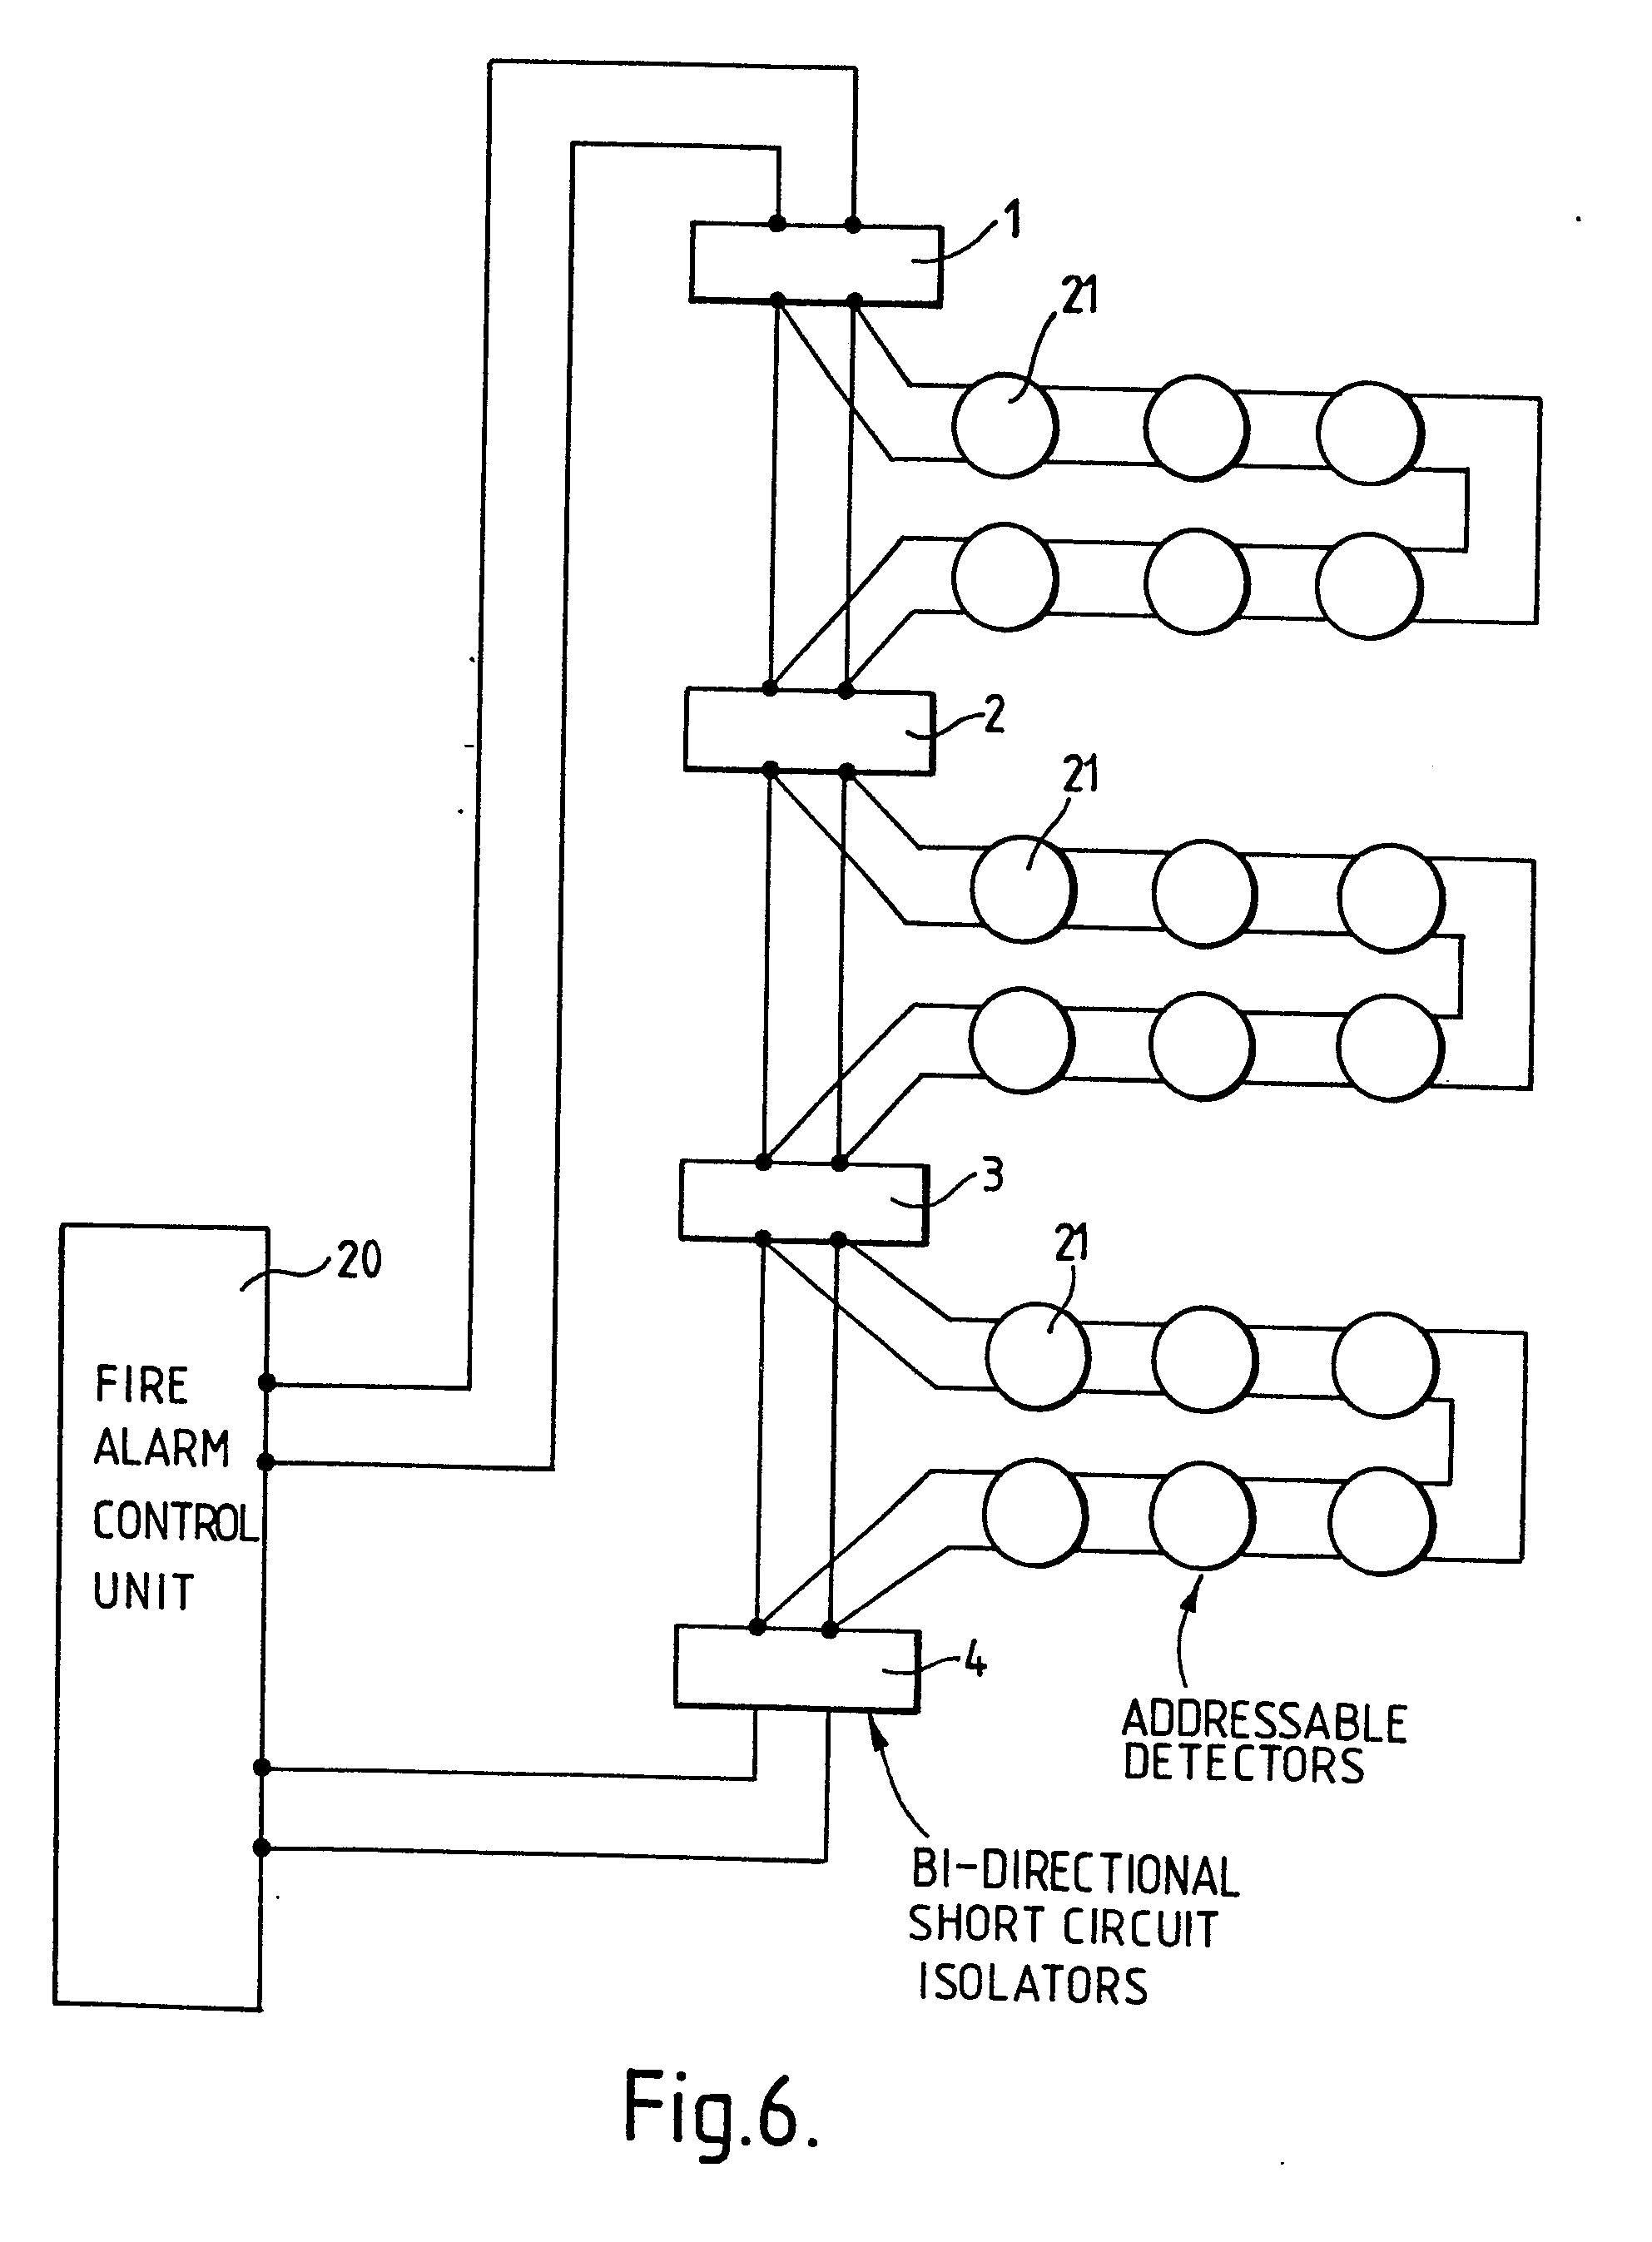 imgf0005 addressable fire alarm circuit diagram circuit and schematics fire alarm wiring schematic at n-0.co